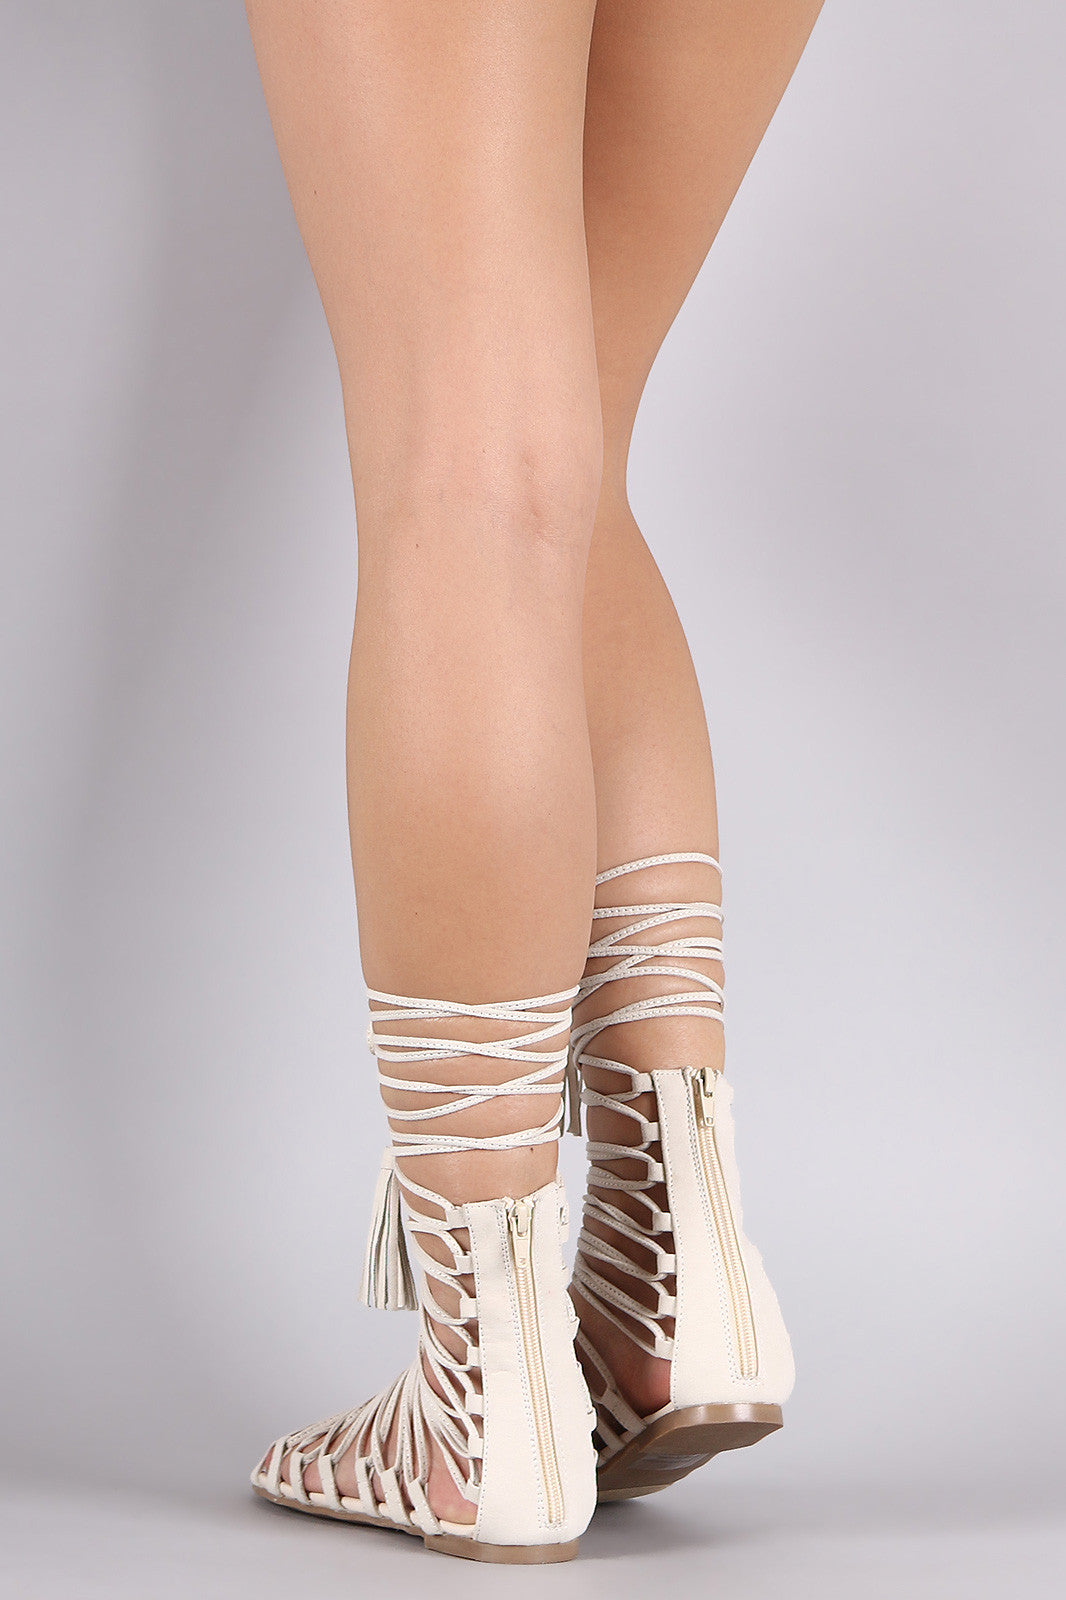 Strappy Tassel Lace Up Flat Sandal - Thick 'N' Curvy Shop - 3